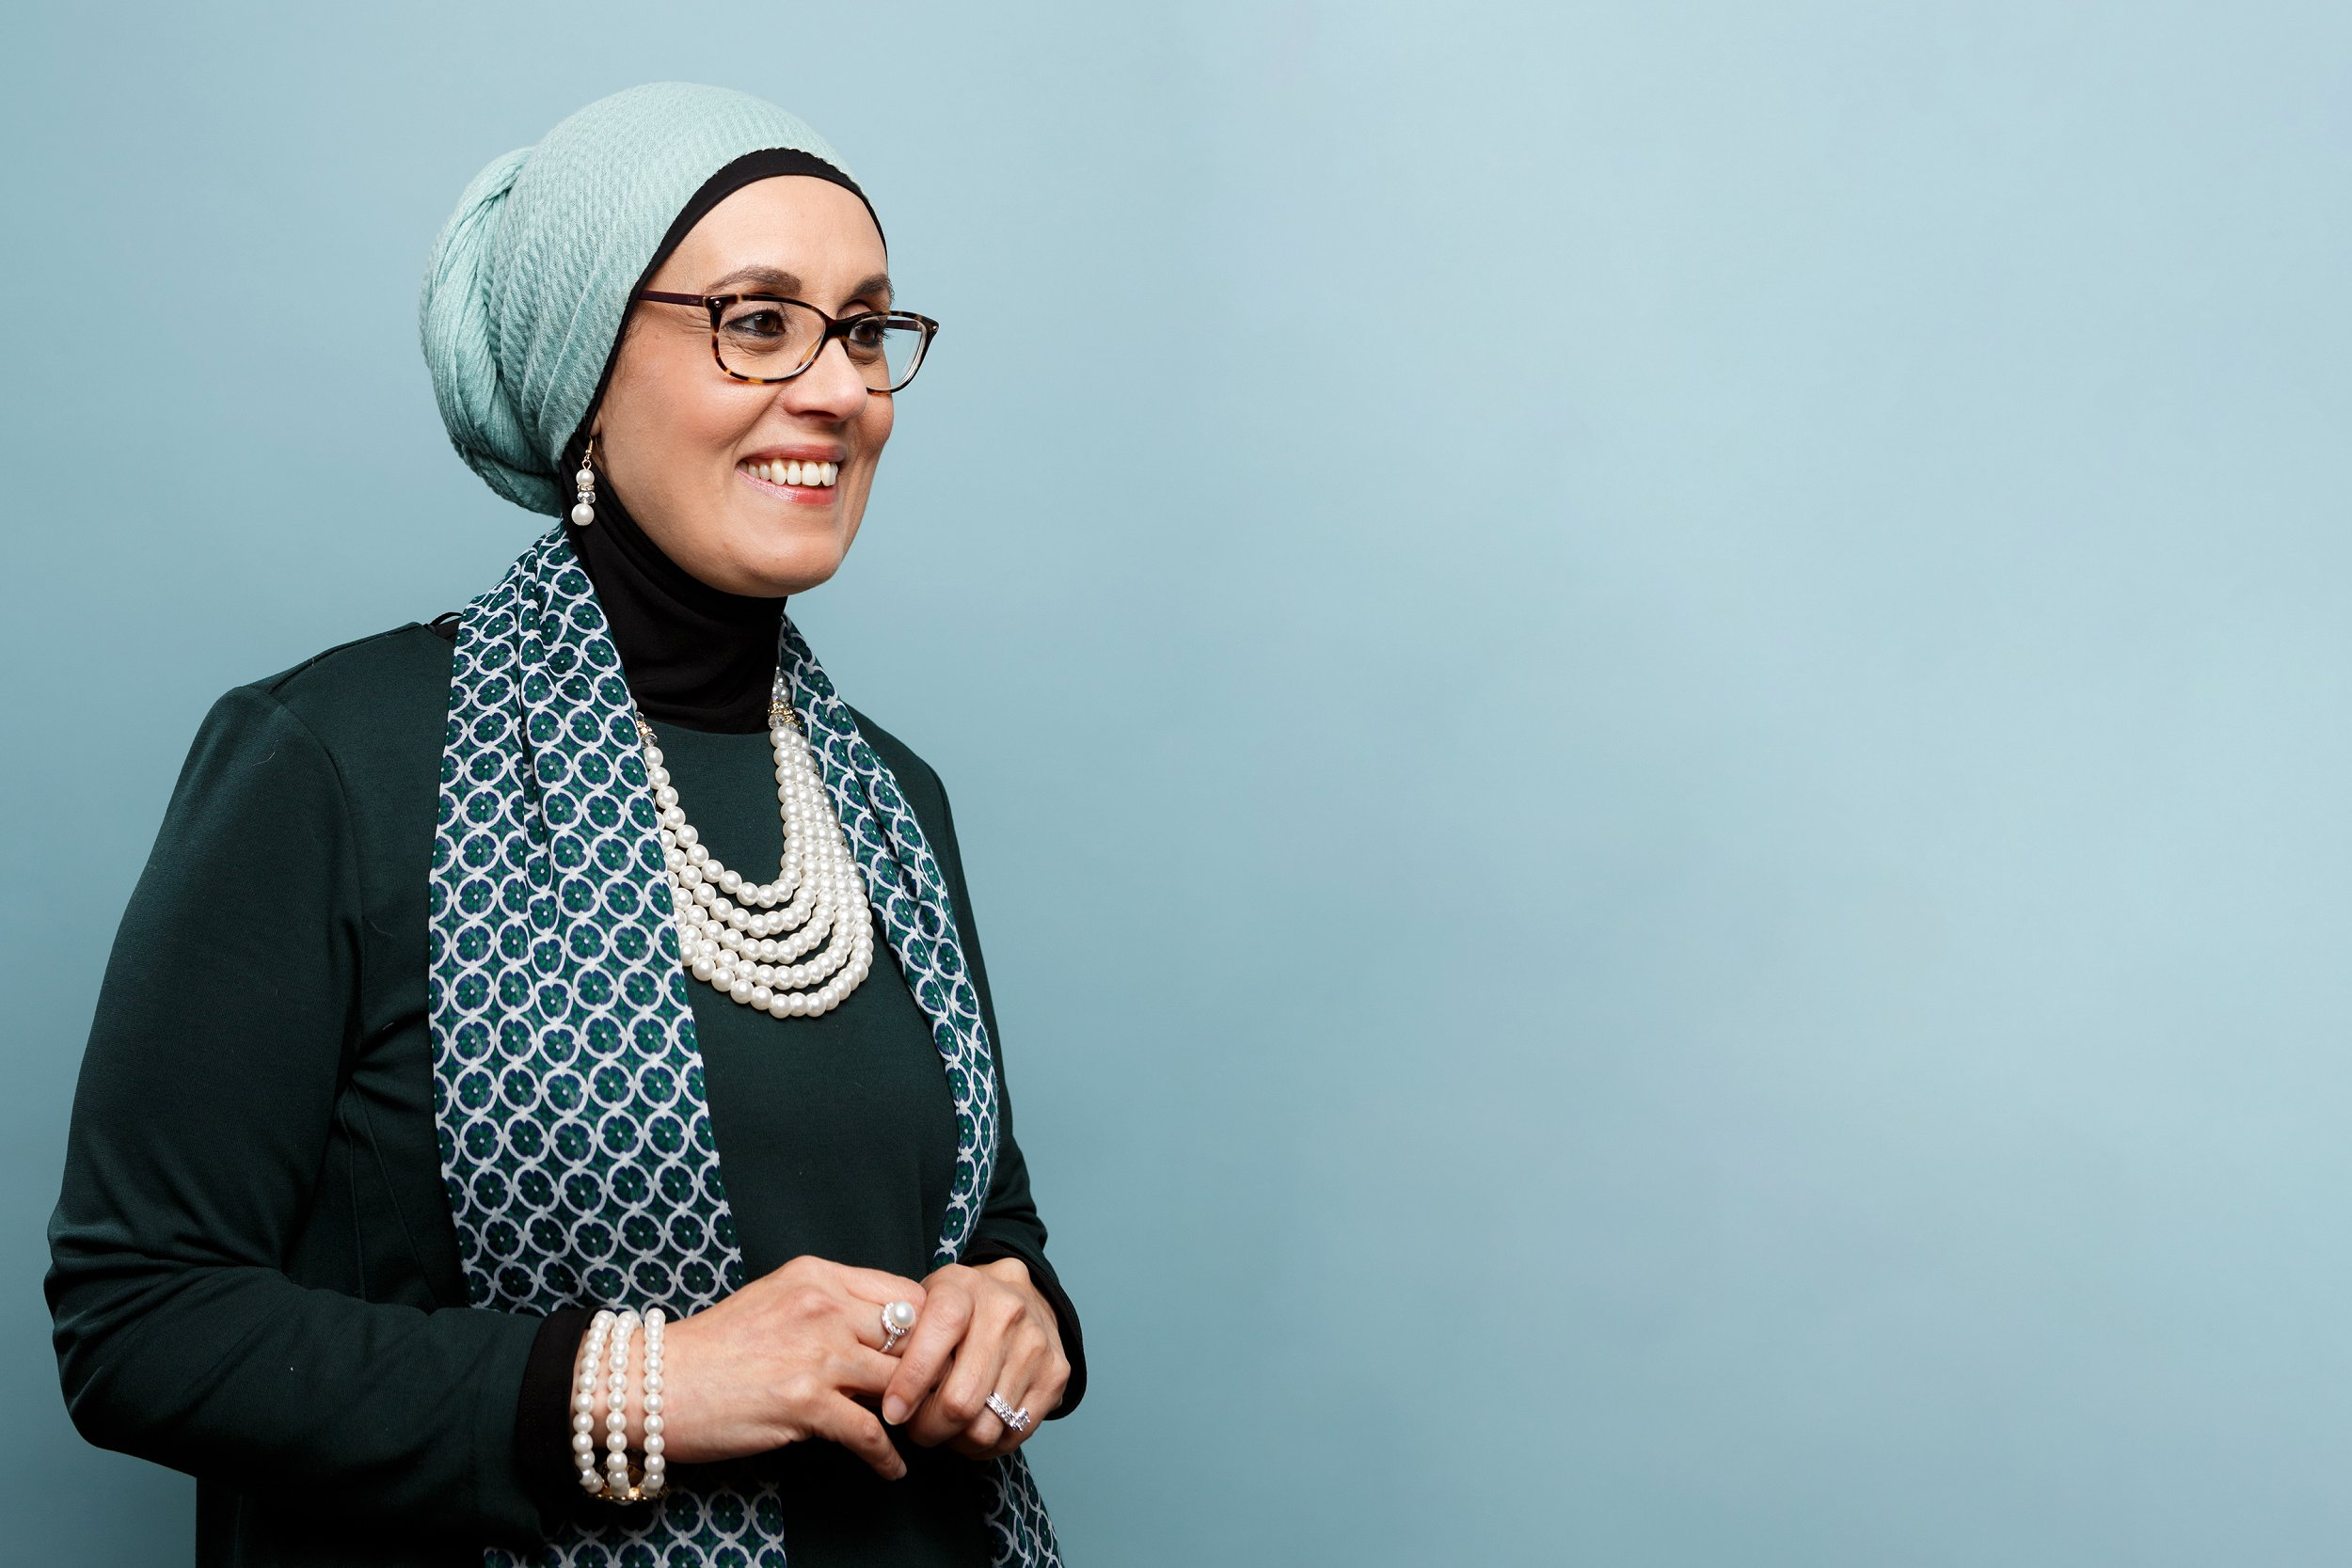 Muslims for American Progress - a project of the Institute for Social Policy and Understanding